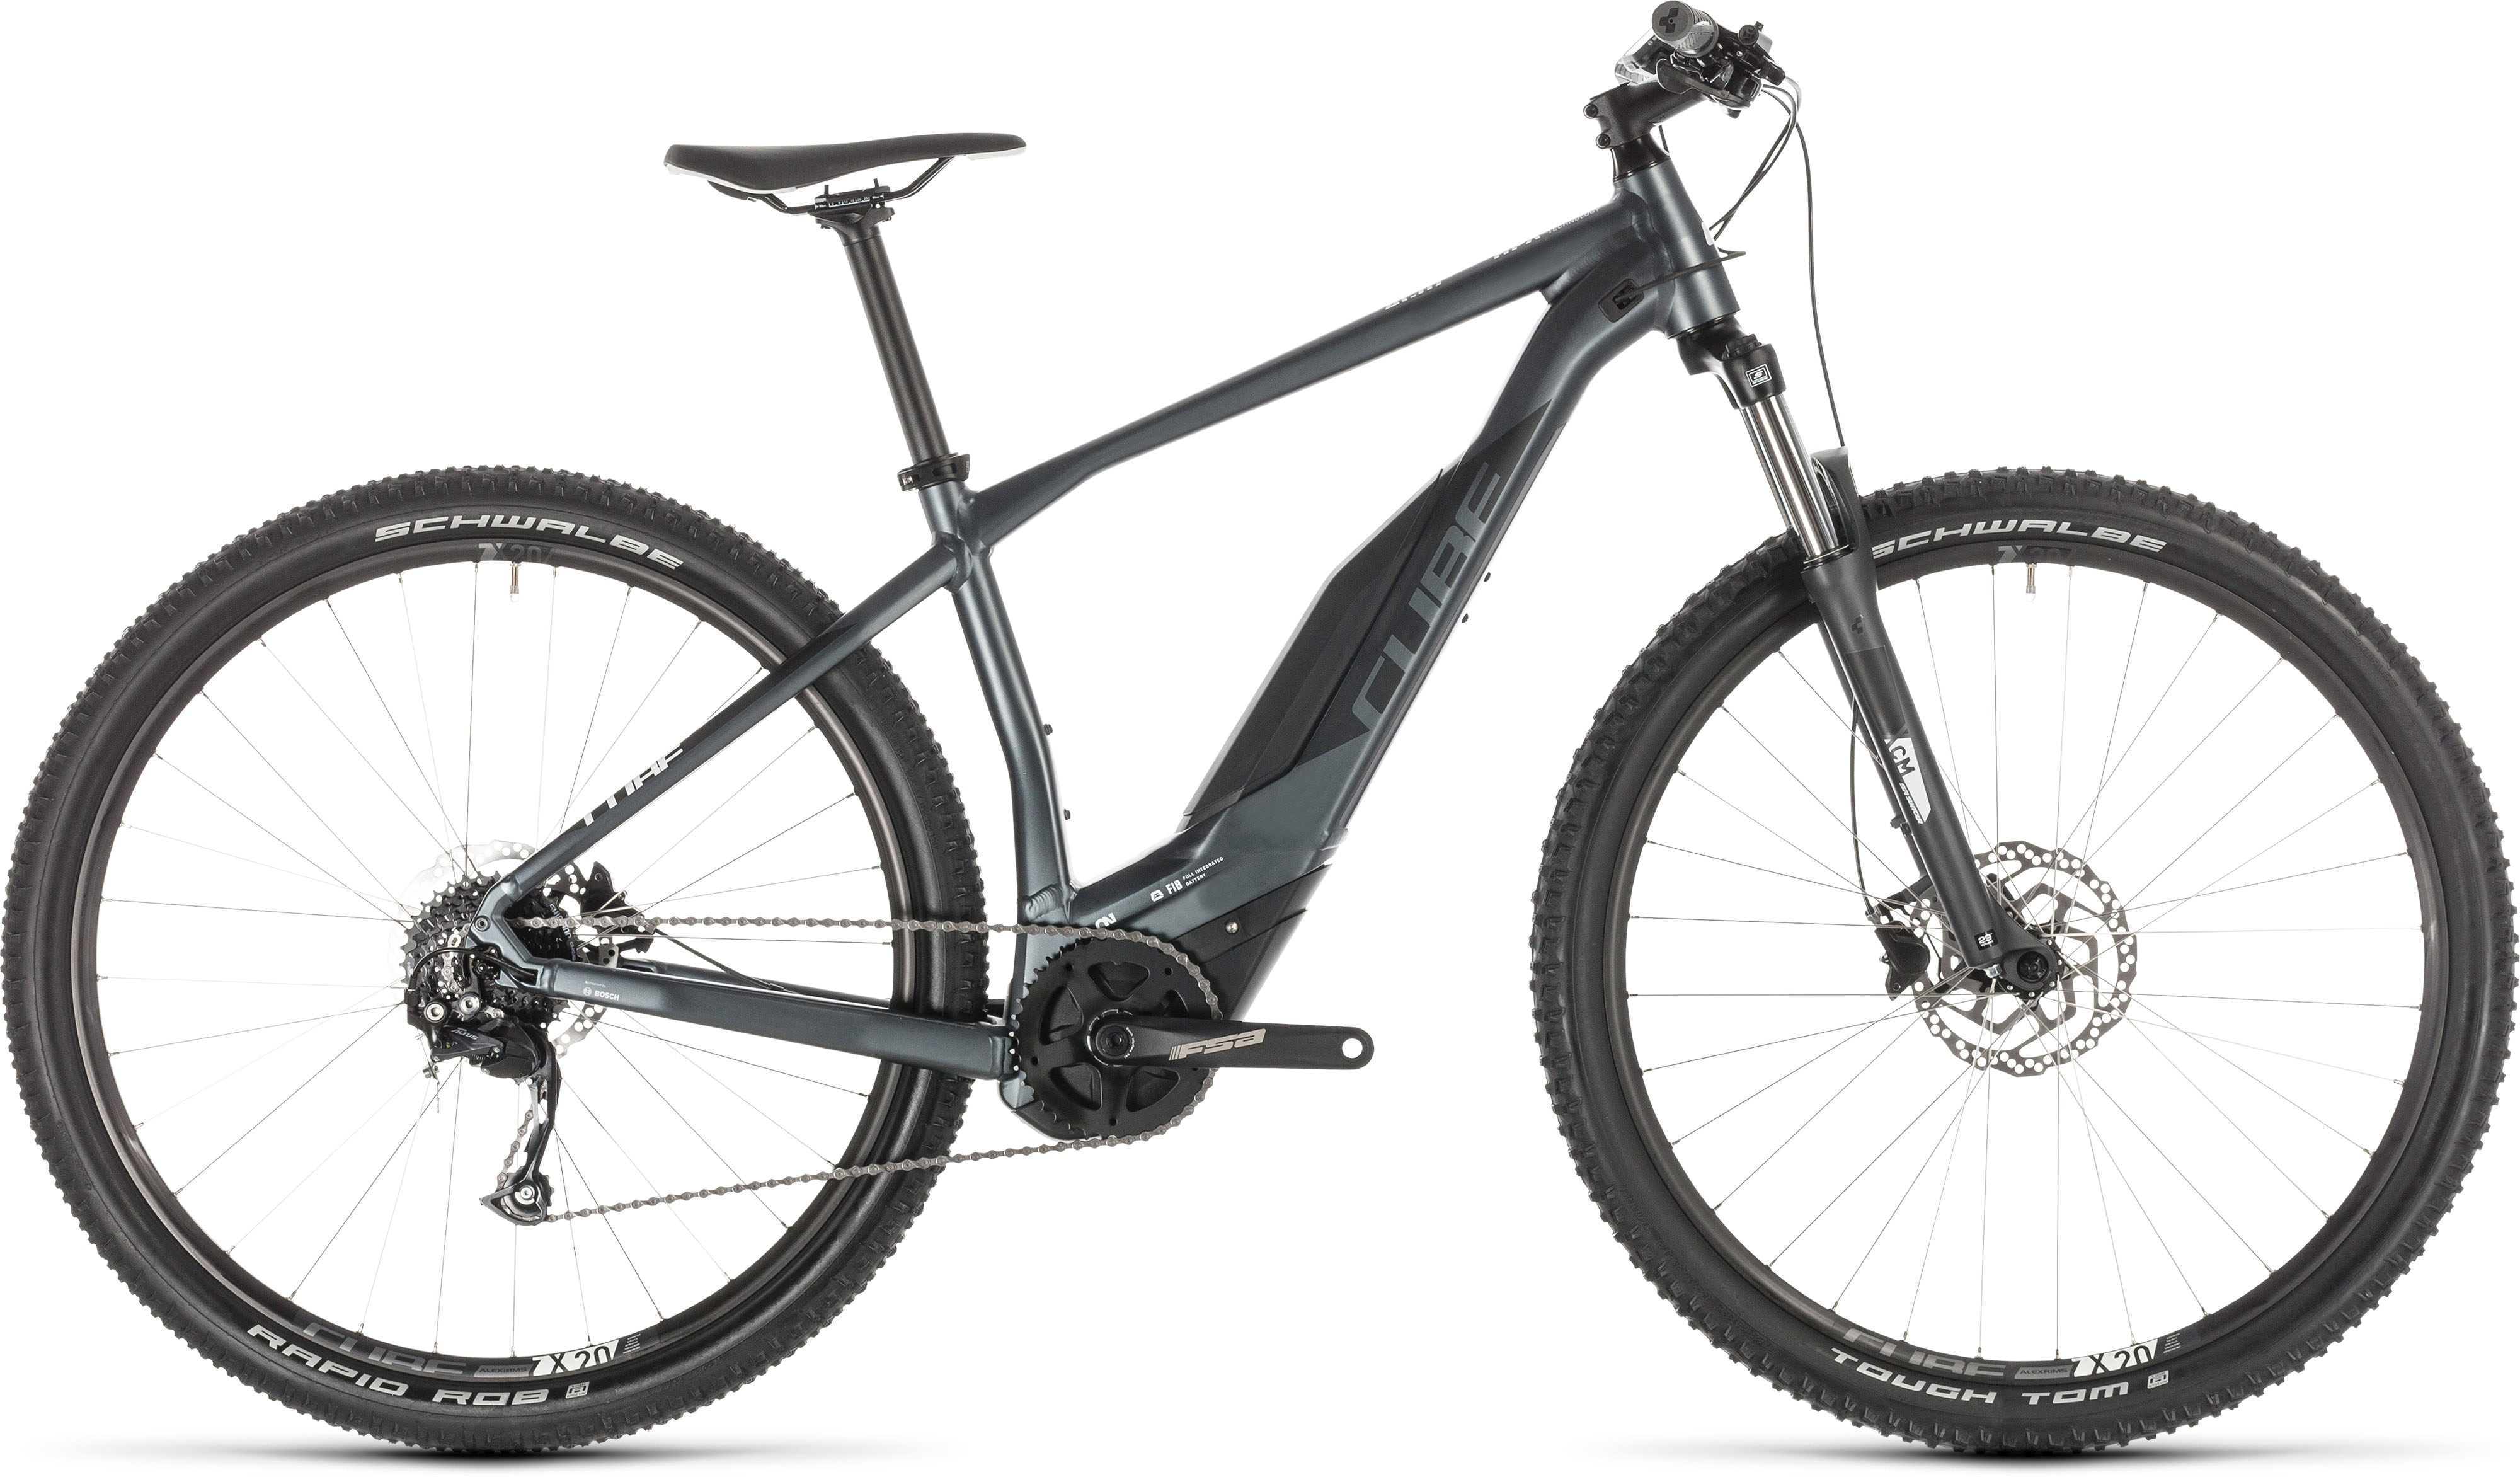 Cube Acid Hybrid One 500 29 E-Bike (2019) | City